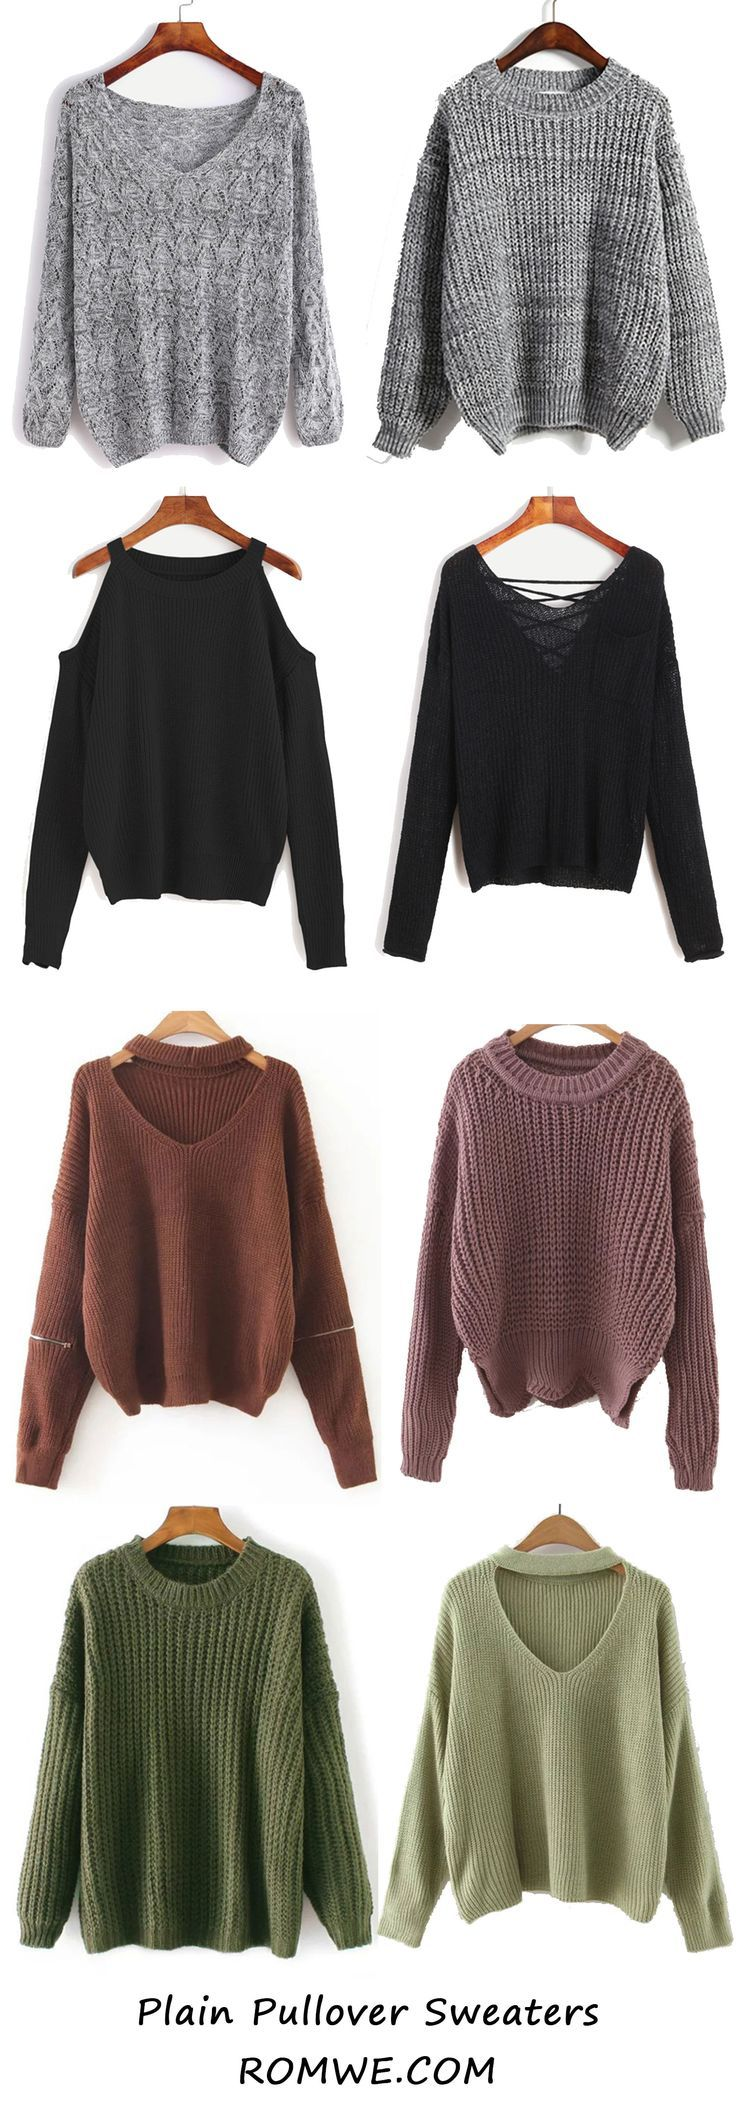 Fall Plain Sweaters from romwe.com | Fashion!!! | Pinterest ...